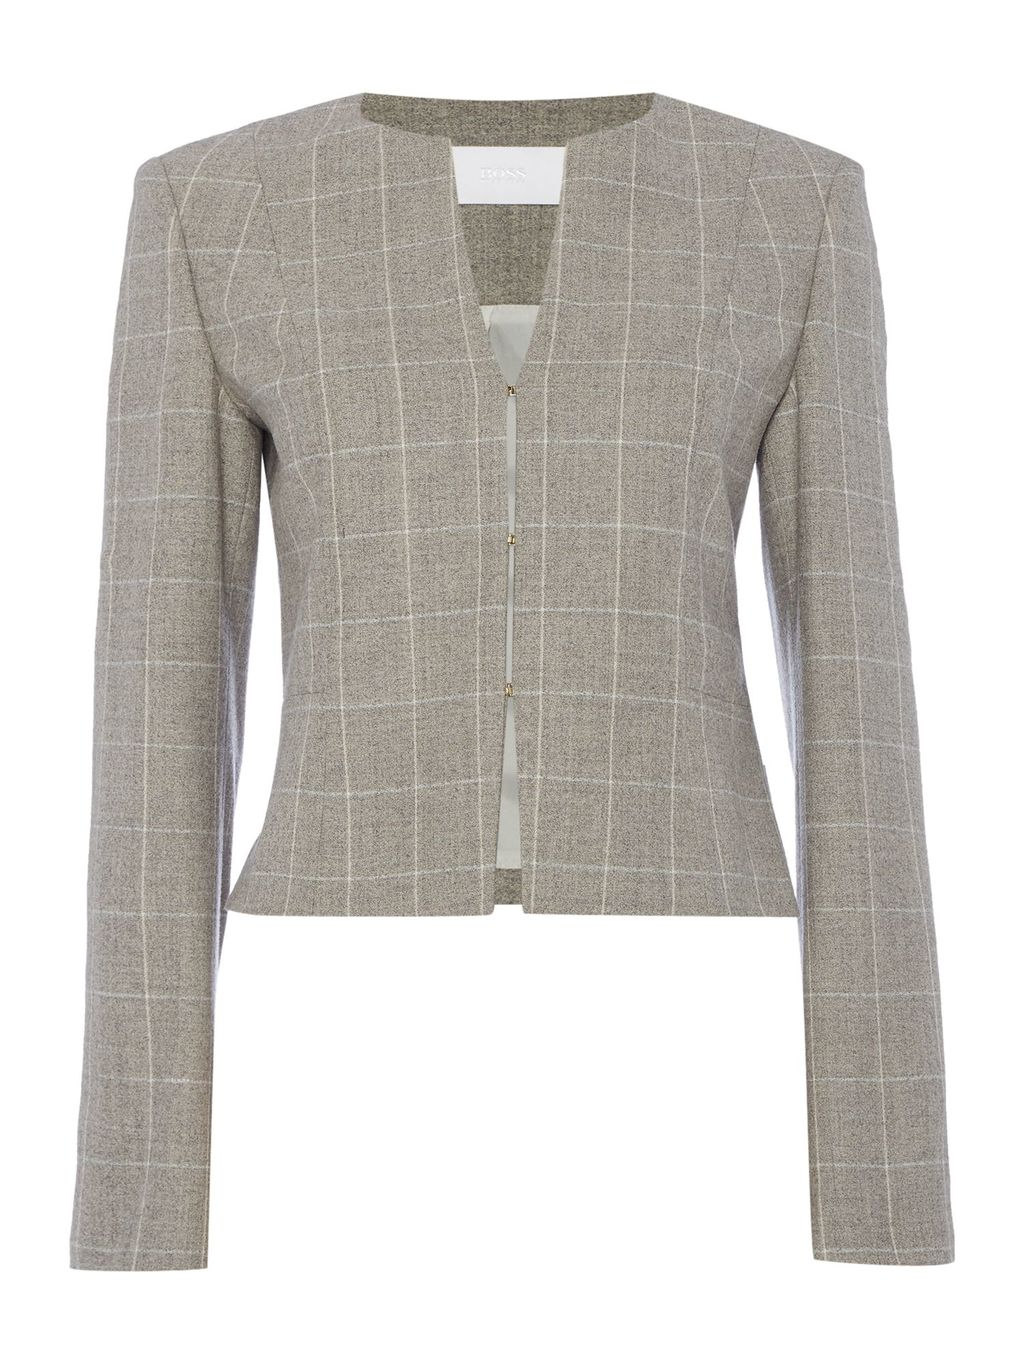 Jafila1 Square Check Round Neck Jacket, Beige - pattern: checked/gingham; style: single breasted blazer; collar: round collar/collarless; secondary colour: ivory/cream; predominant colour: mid grey; occasions: work; length: standard; fit: tailored/fitted; fibres: wool - mix; sleeve length: long sleeve; sleeve style: standard; collar break: high; pattern type: fabric; texture group: other - light to midweight; wardrobe: investment; season: a/w 2016